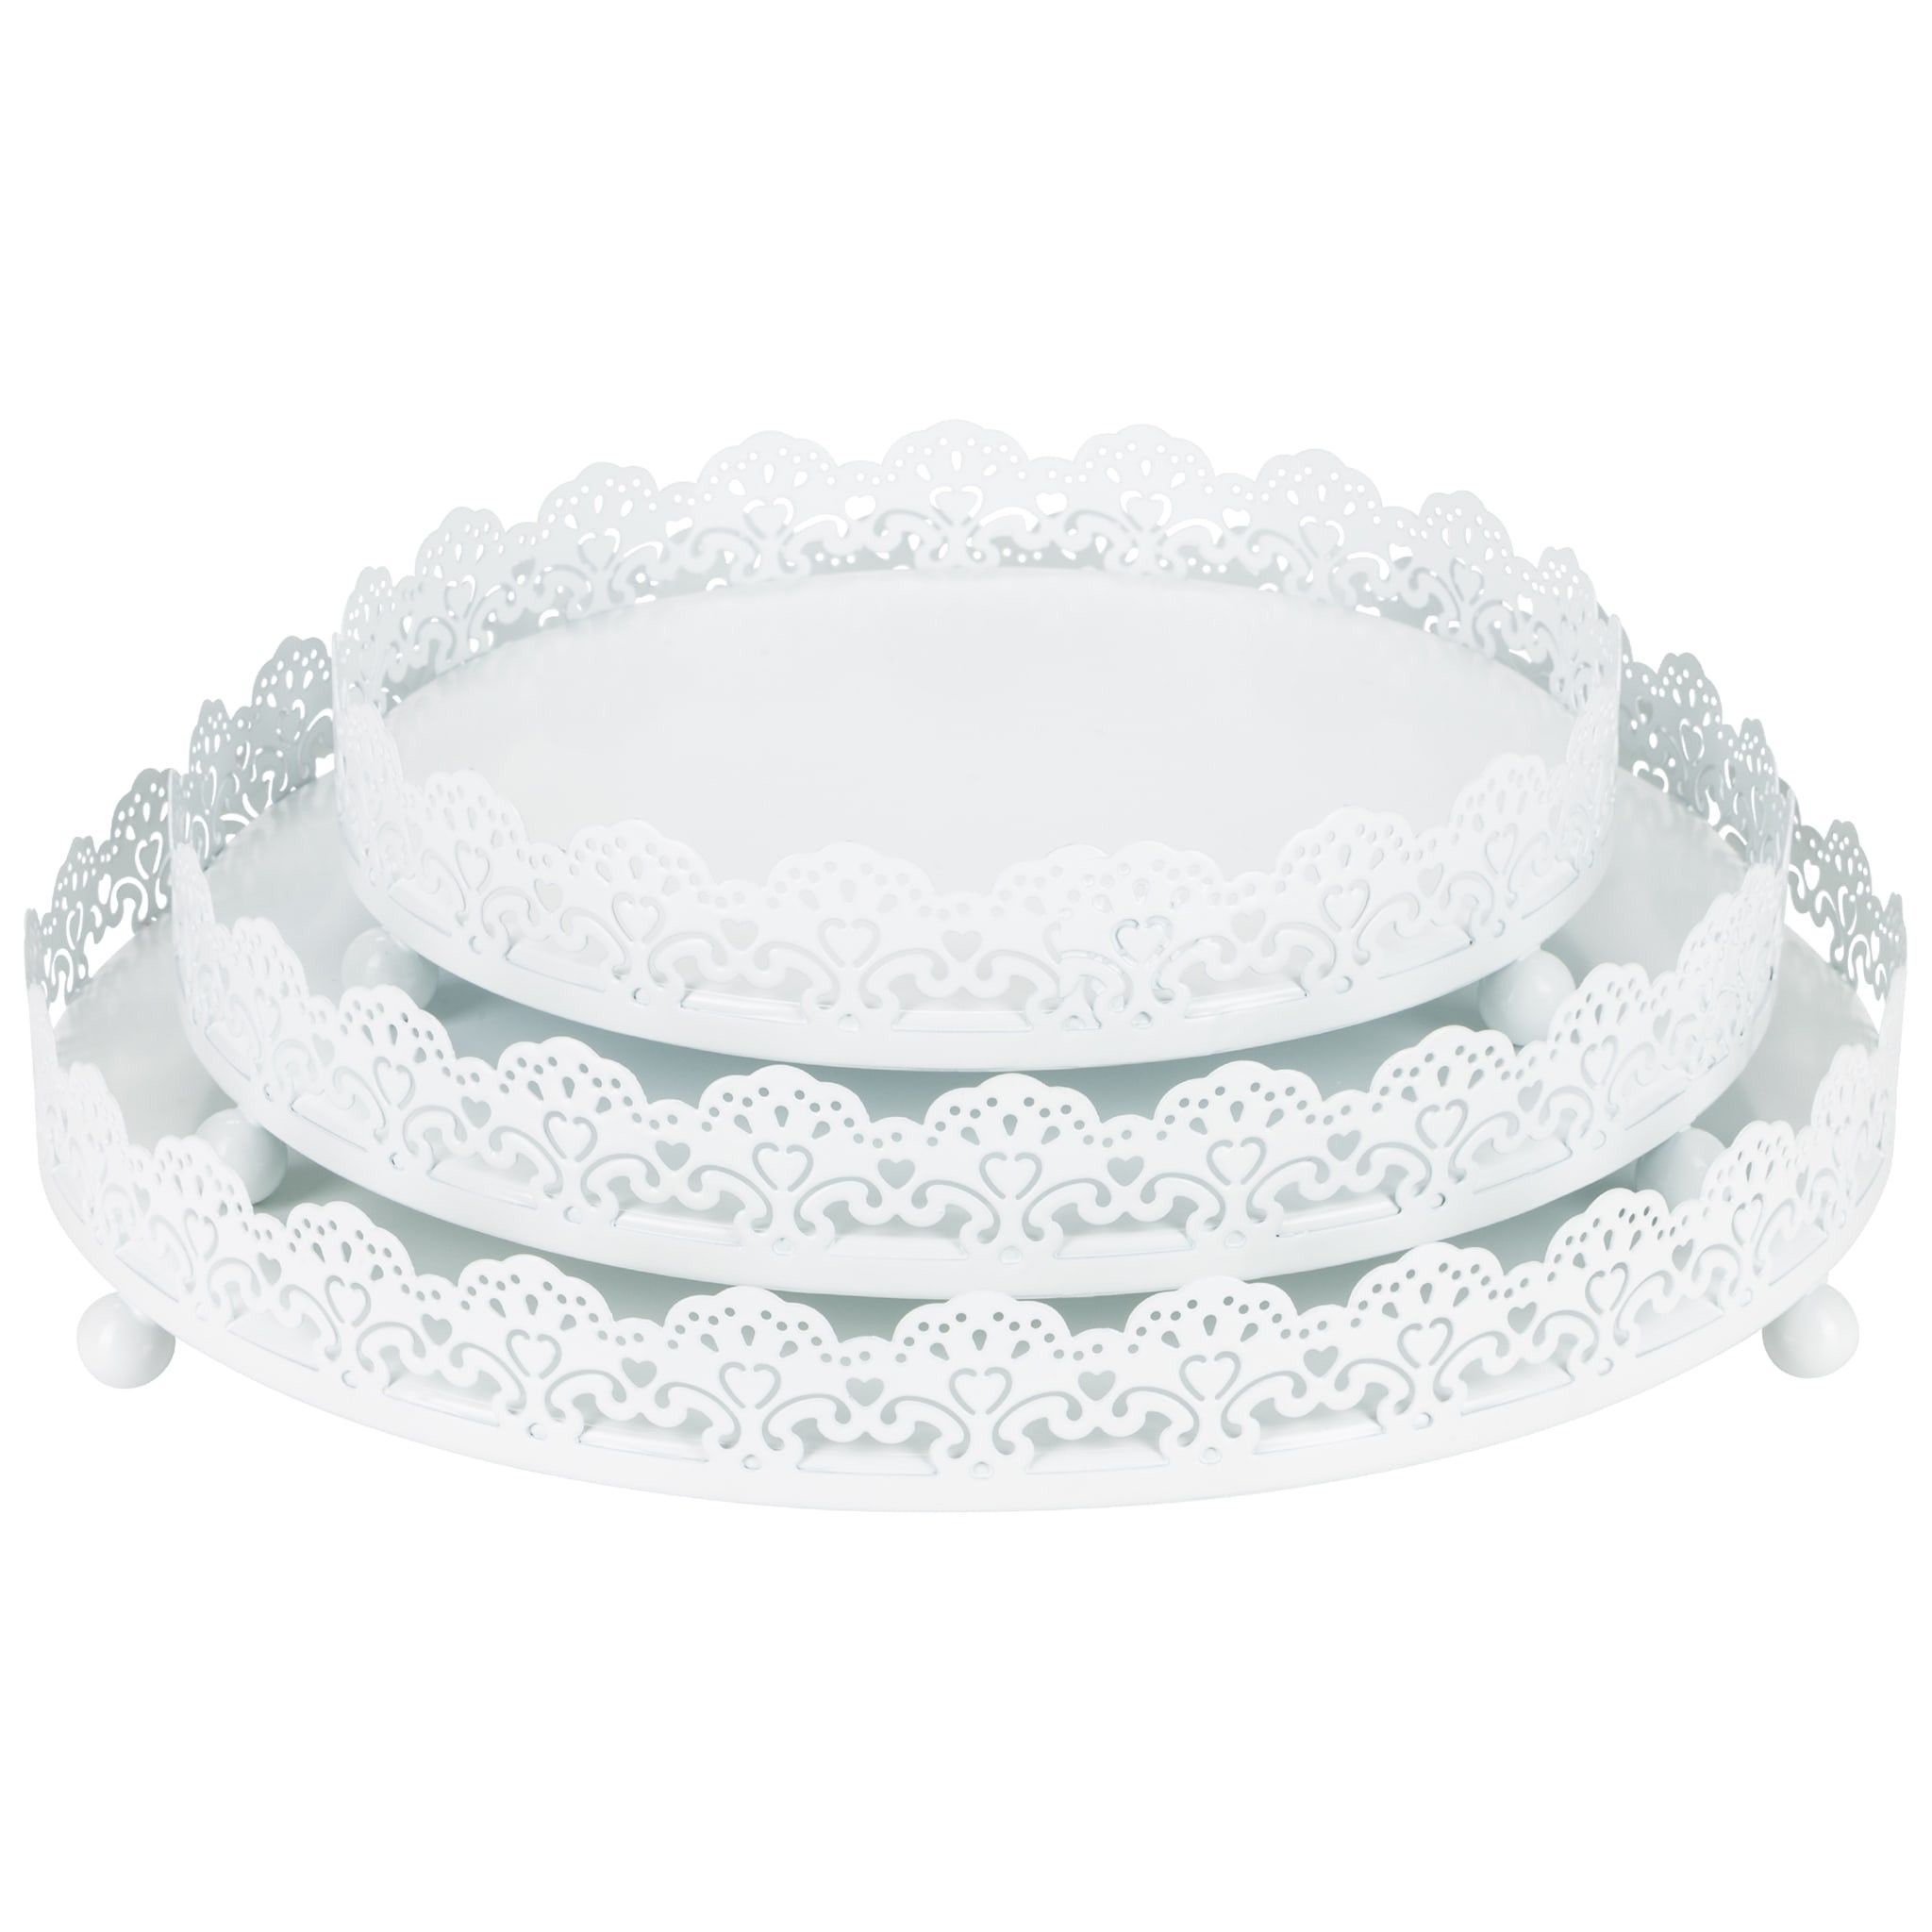 White Decorative Tray Custom 3Piece Round Metal Decorative Tray Set White  Decorative Trays Review